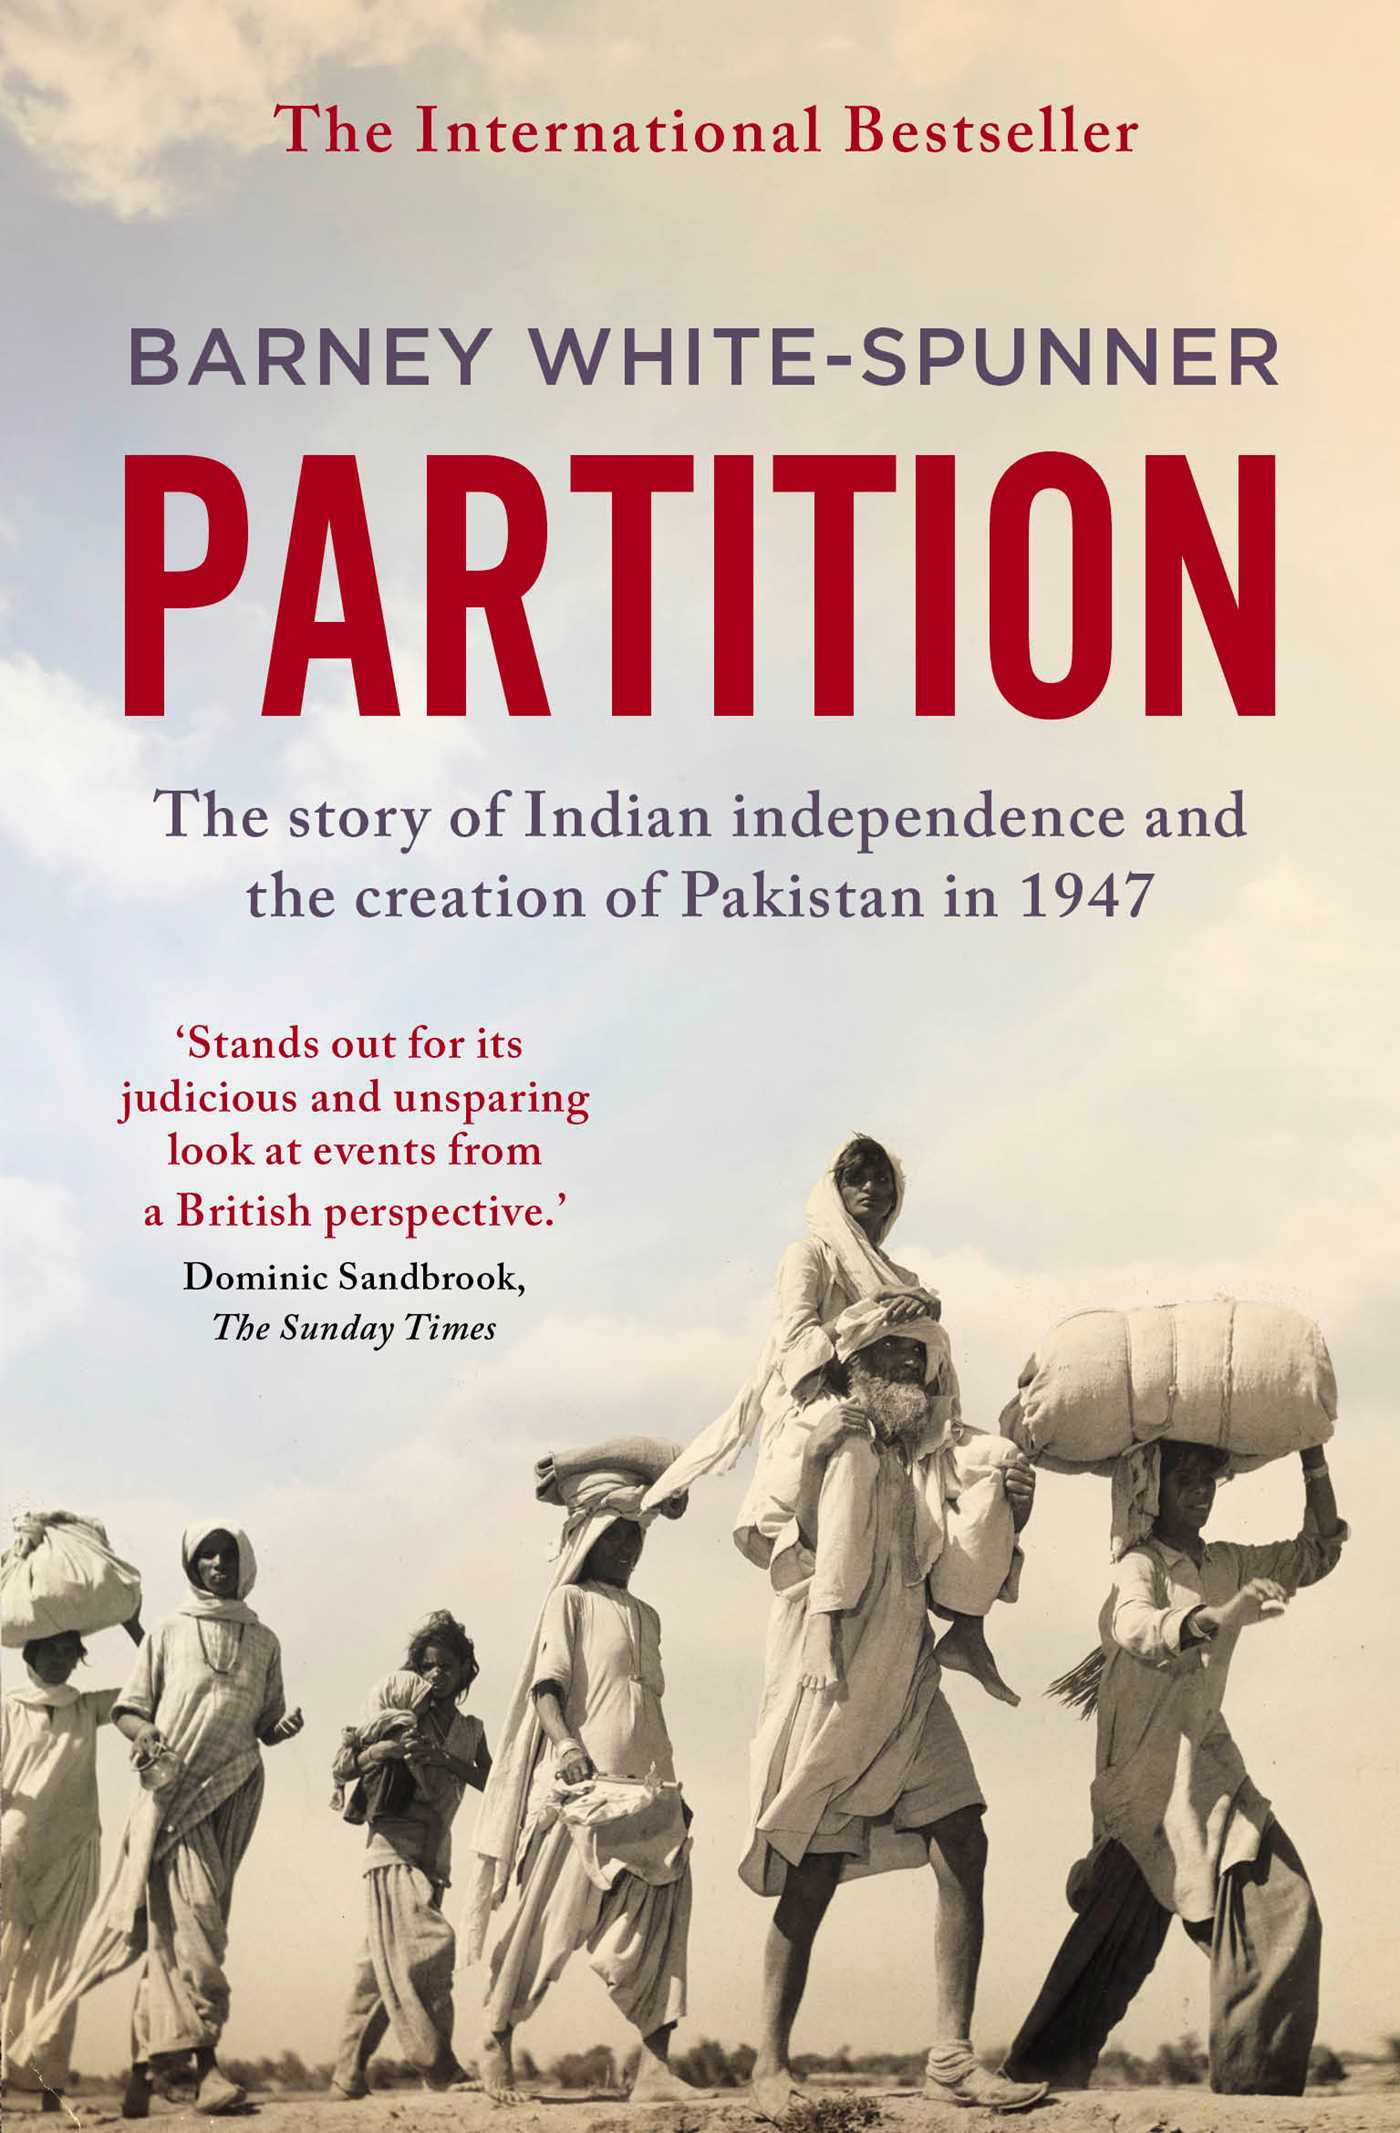 Partition 9781471148033 hr